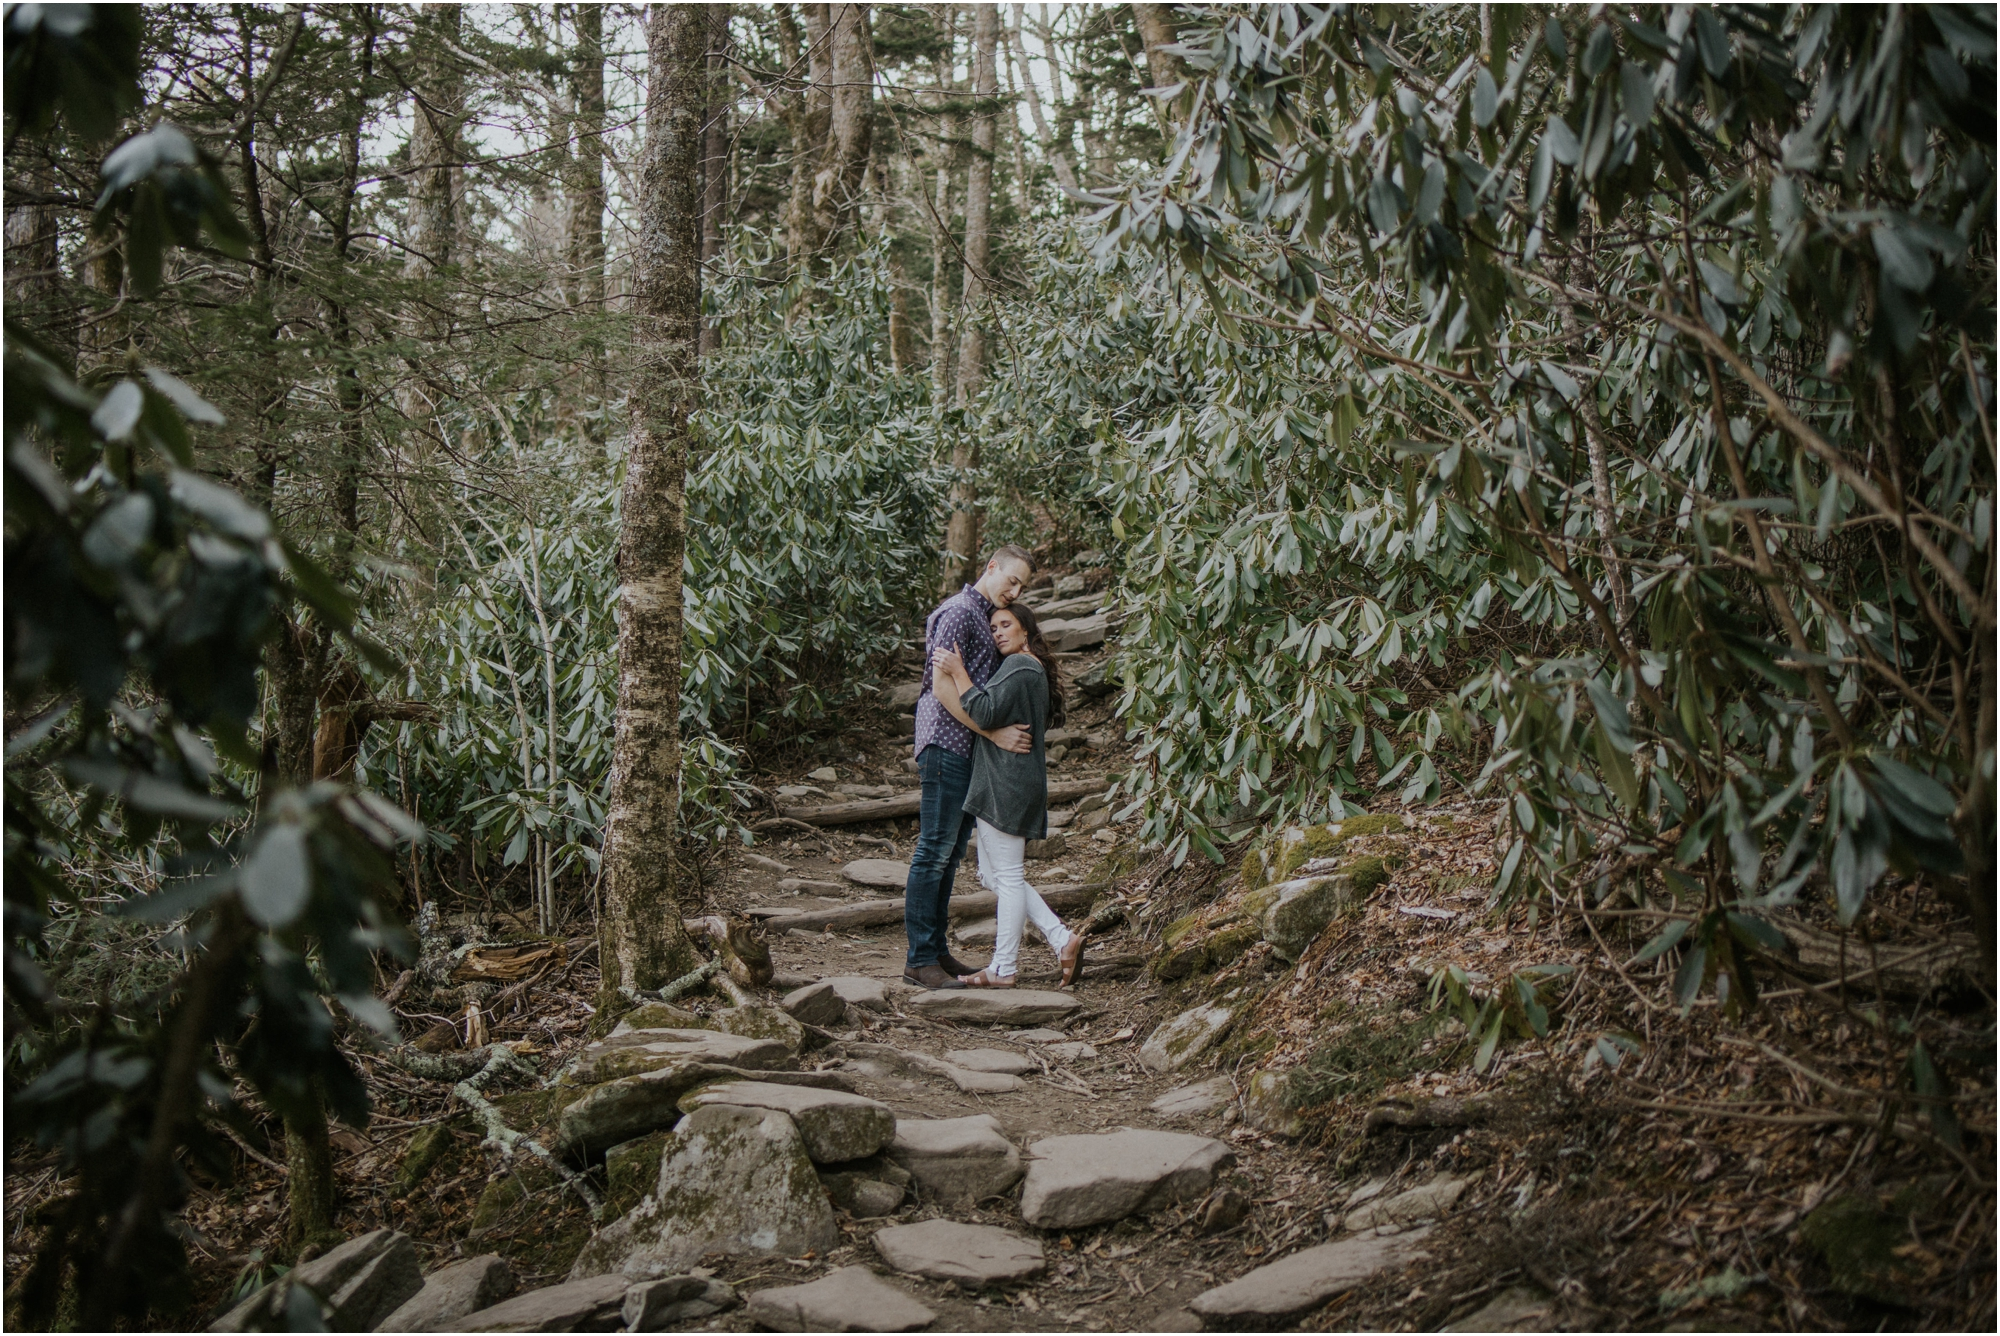 blue-ridge-parkway-engagement-session-north-carolina-boone-blowing-rock-northeast-tennessee-katy-sergent-photography_0008.jpg